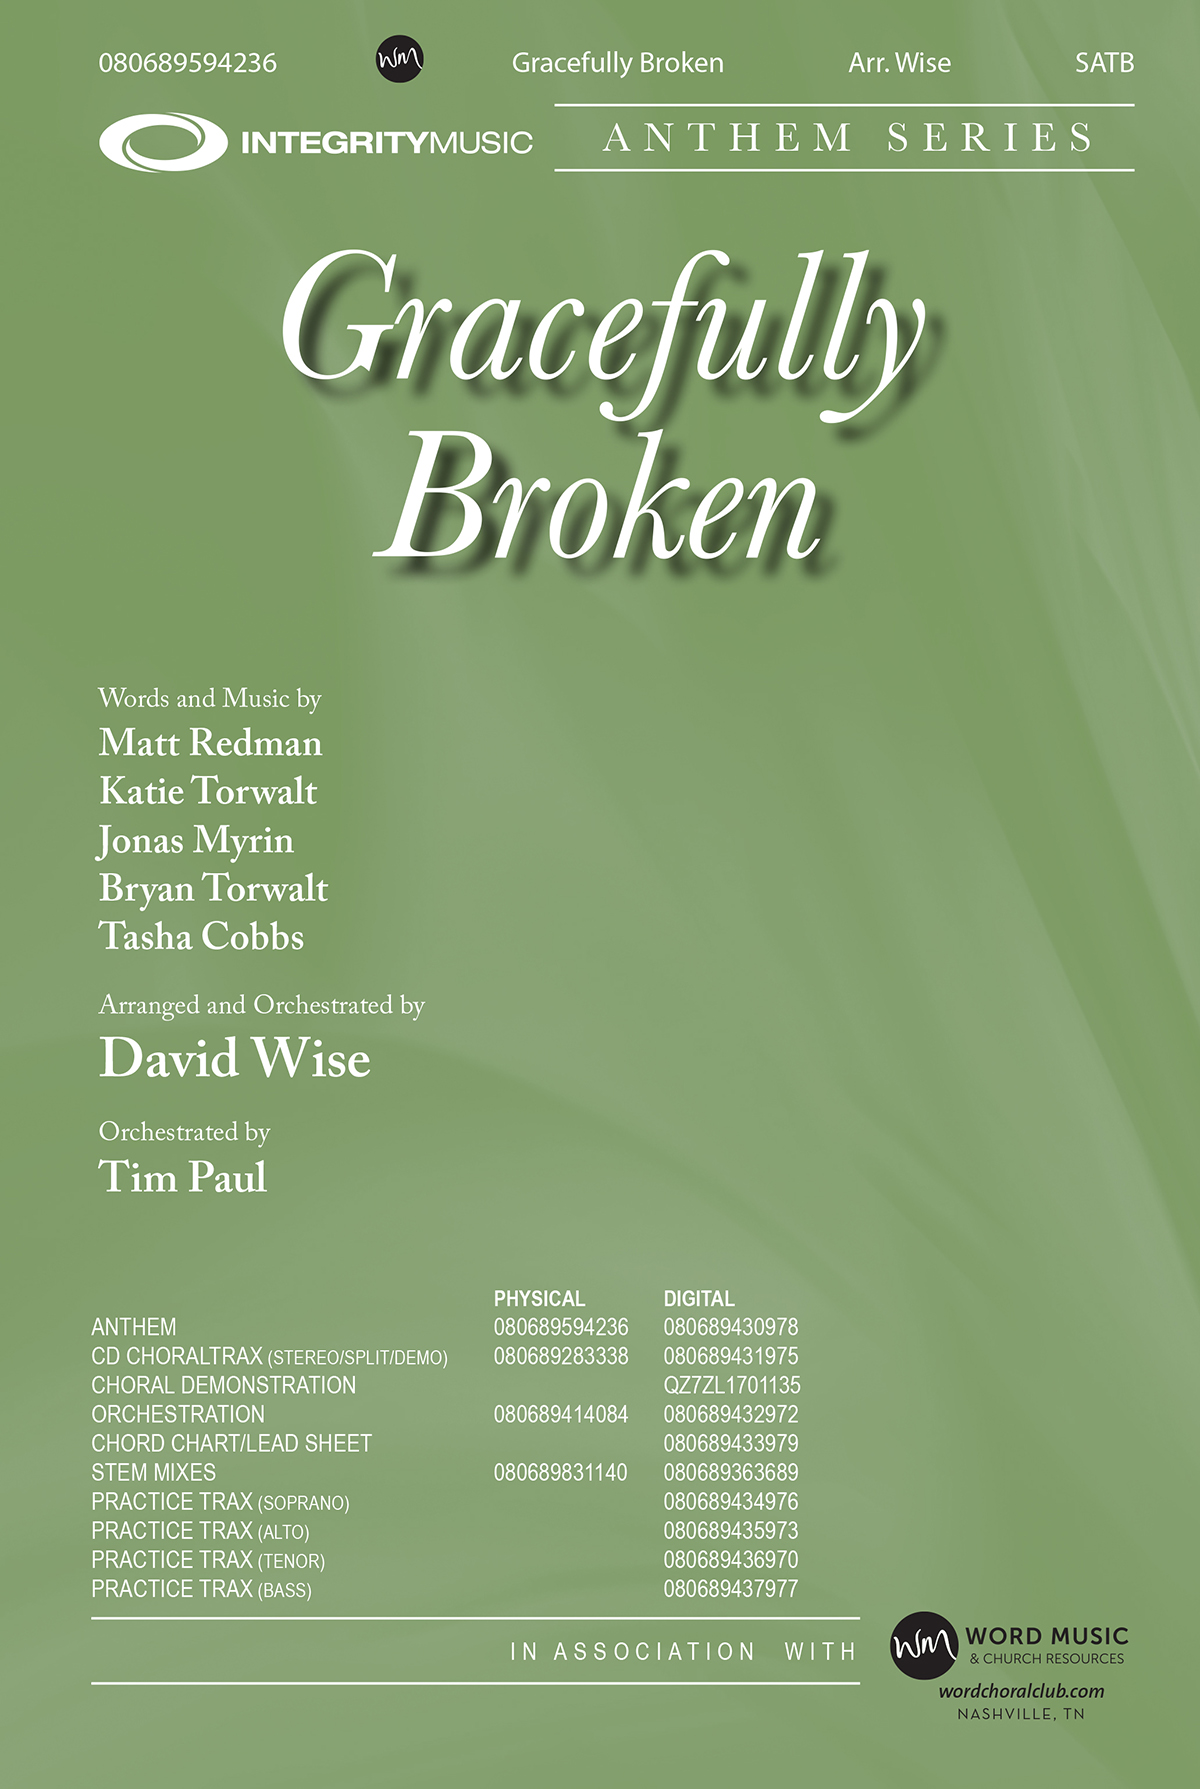 Gracefully Broken